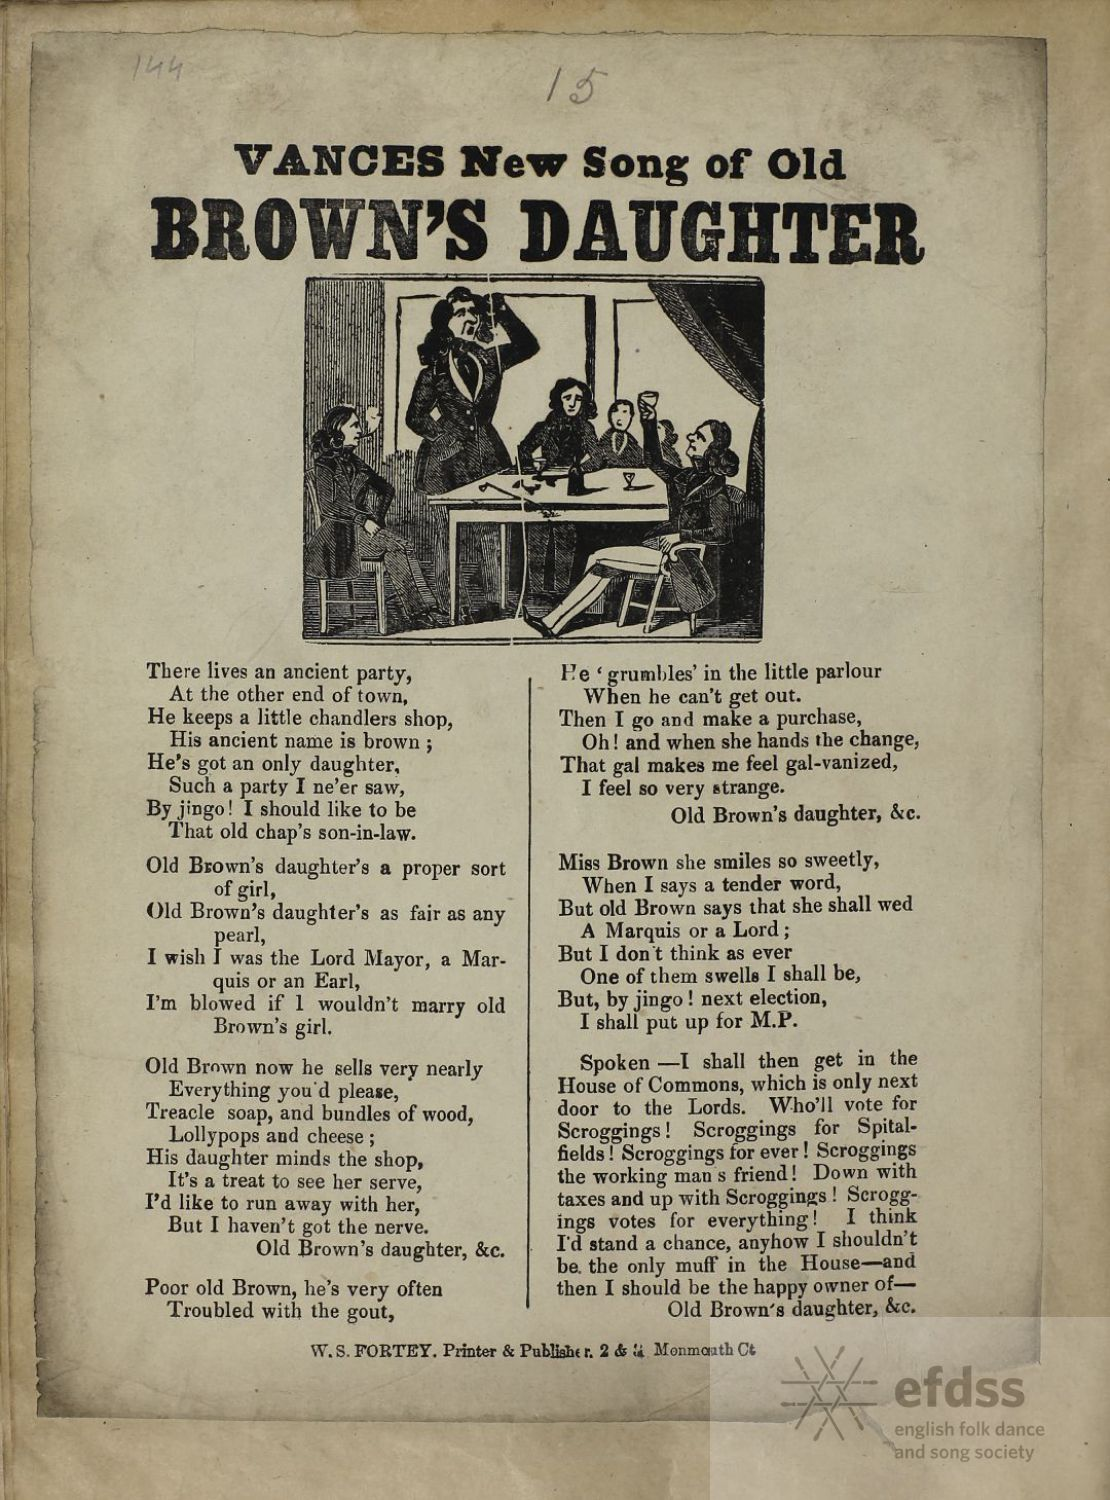 Vance's New Song Of Old Brown's Daughter - from the EFDSS Full English archive